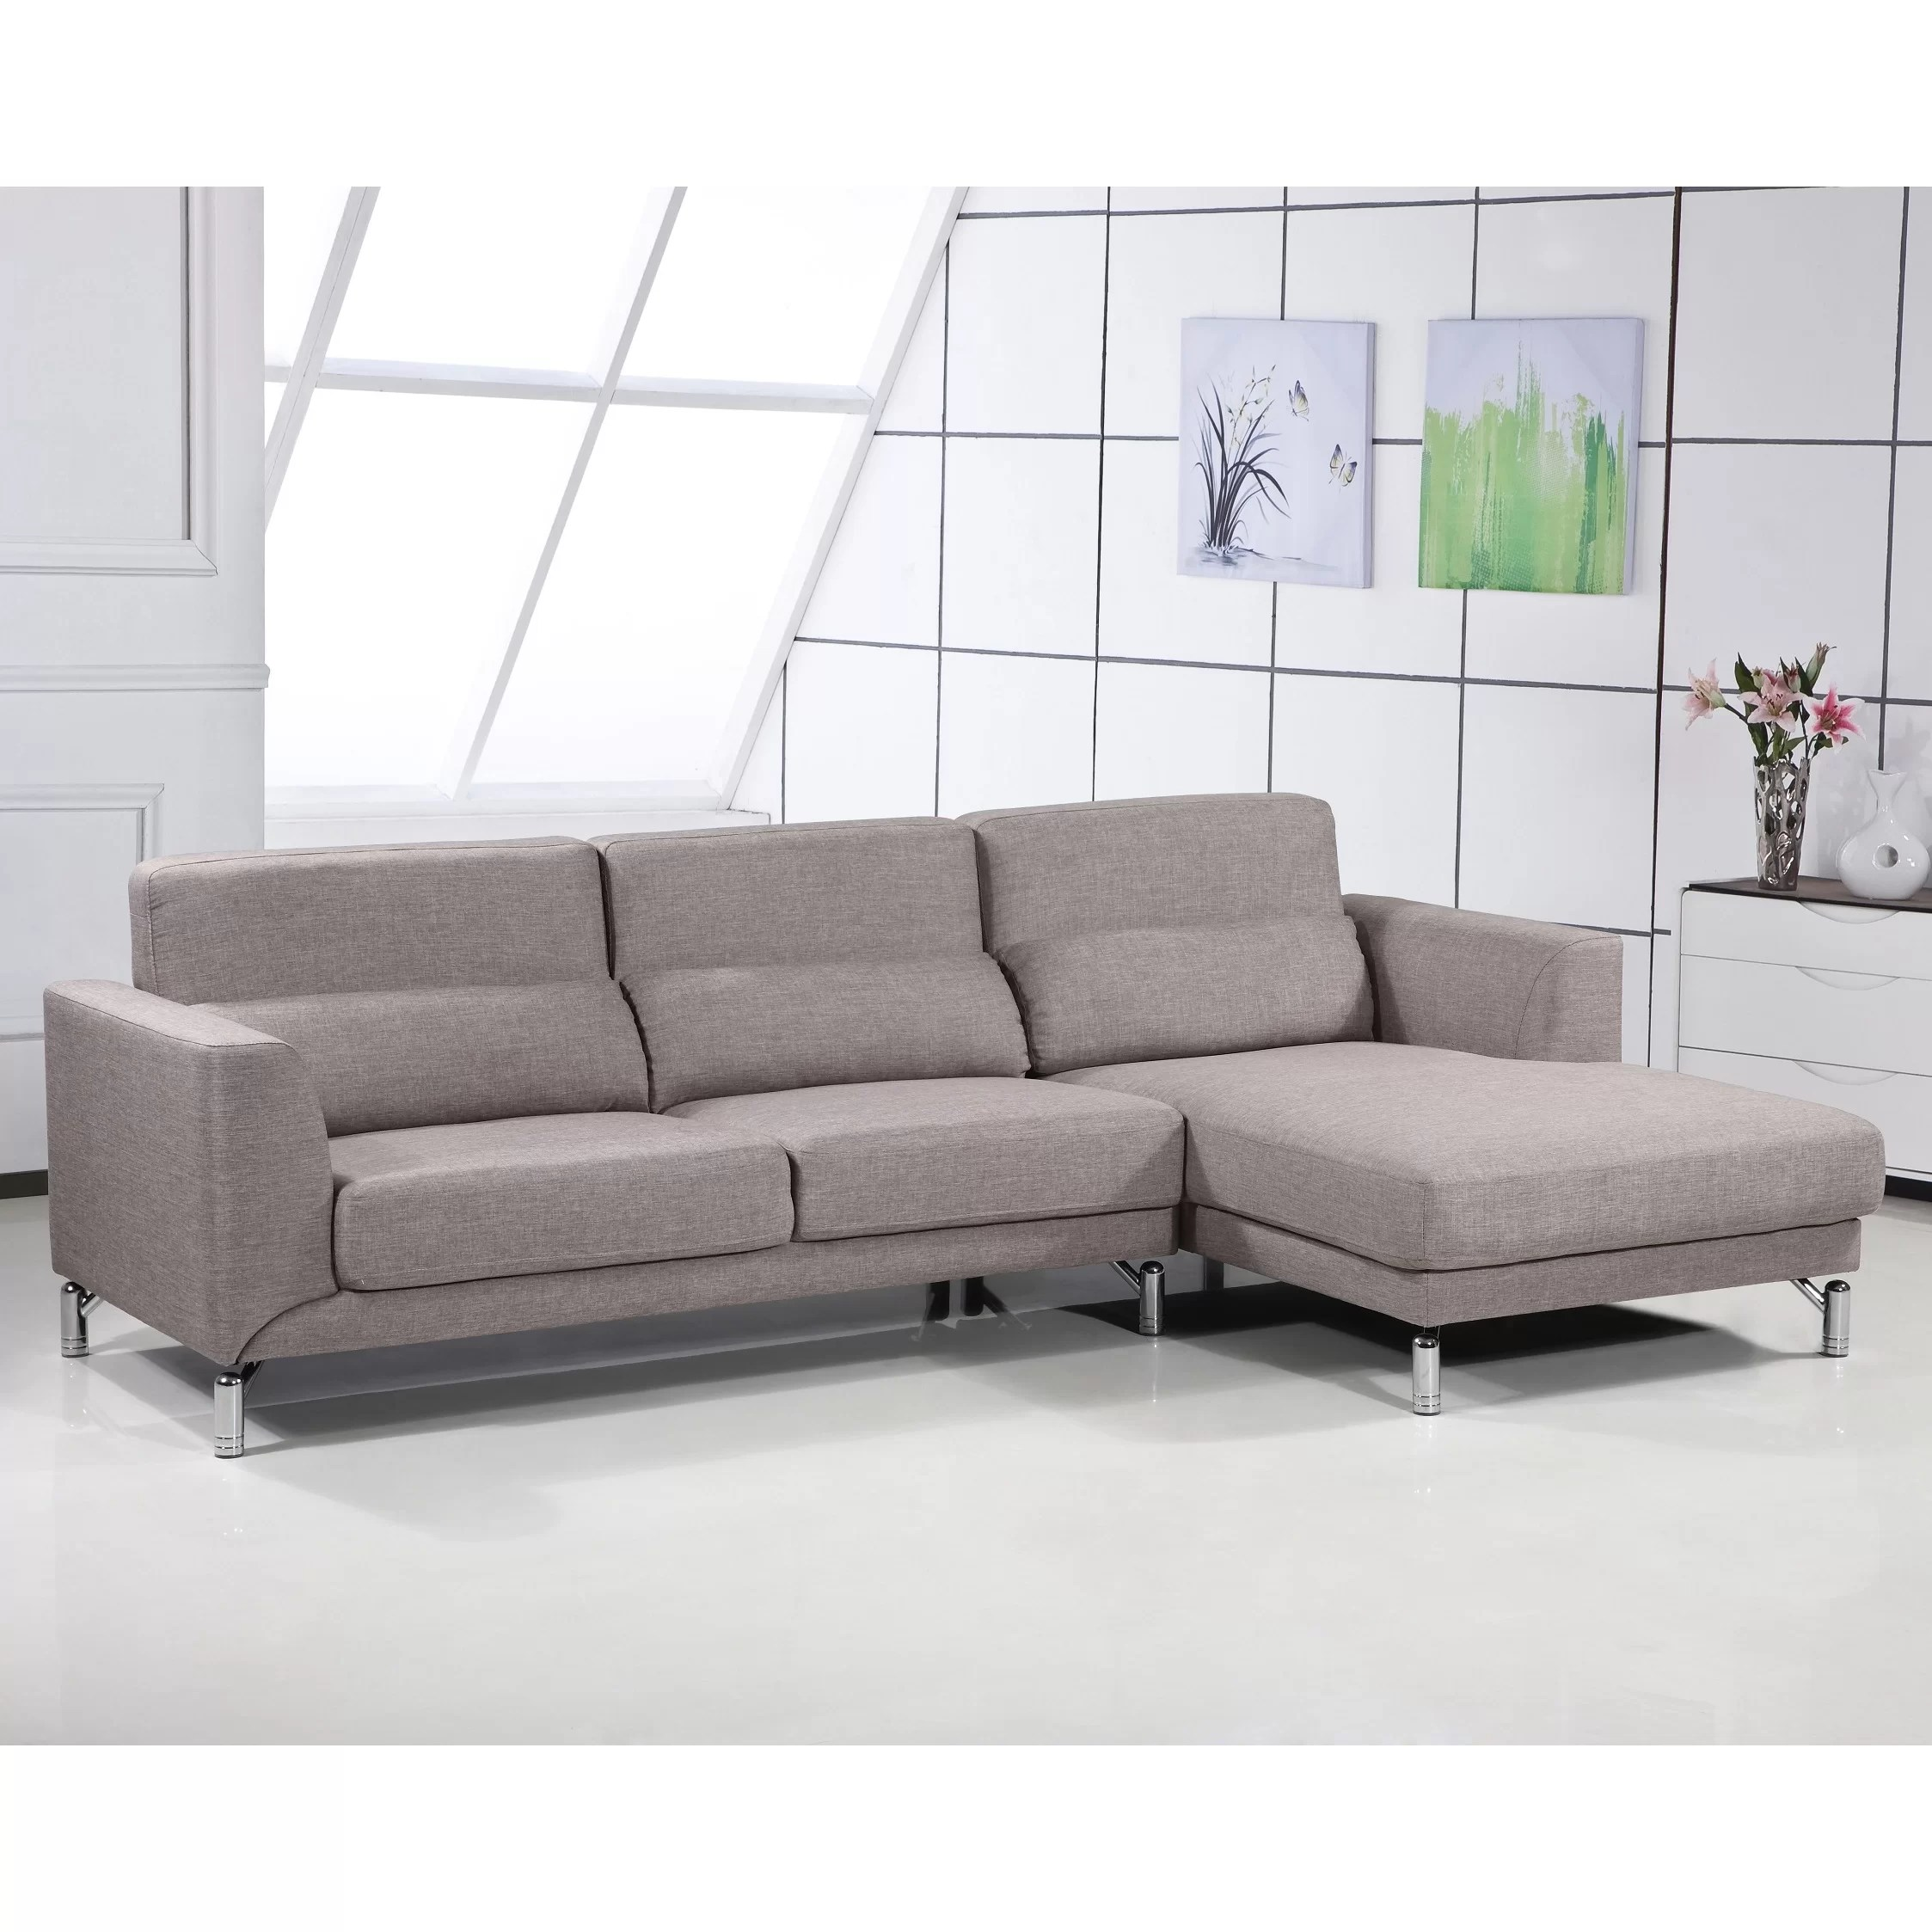 aria fabric modern sectional sofa set best cleaners in mumbai container and reviews wayfair